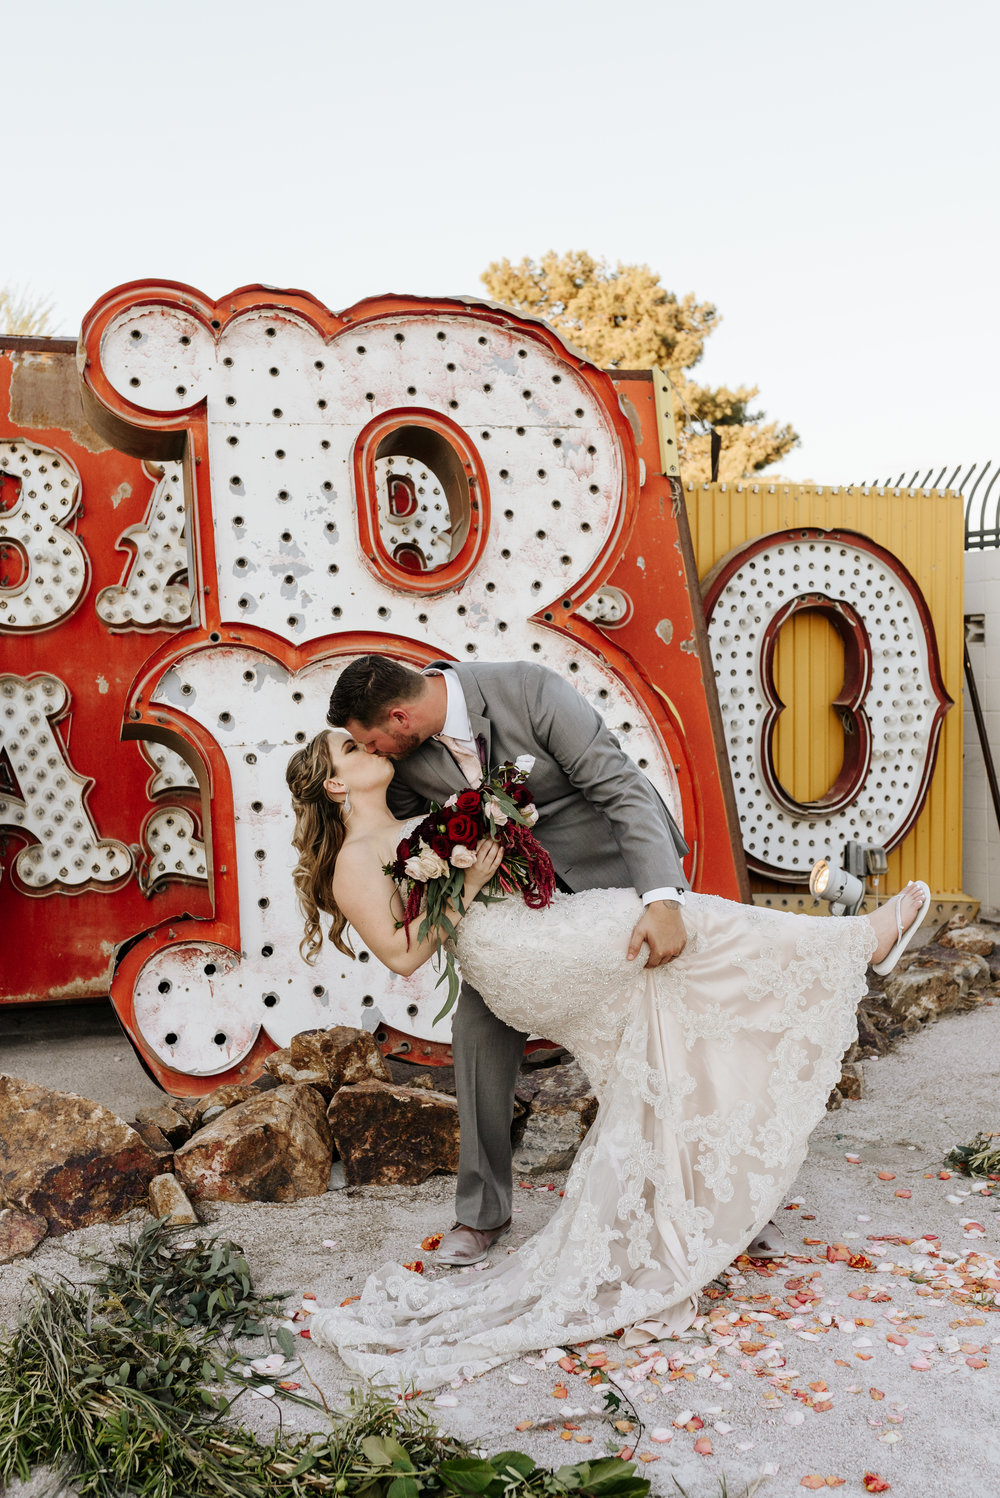 Neon-Museum-Wedding-Las-Vegas-Nevada-Golden-Nugget-Photography-by-V-Ally-and-Dan-3213.jpg